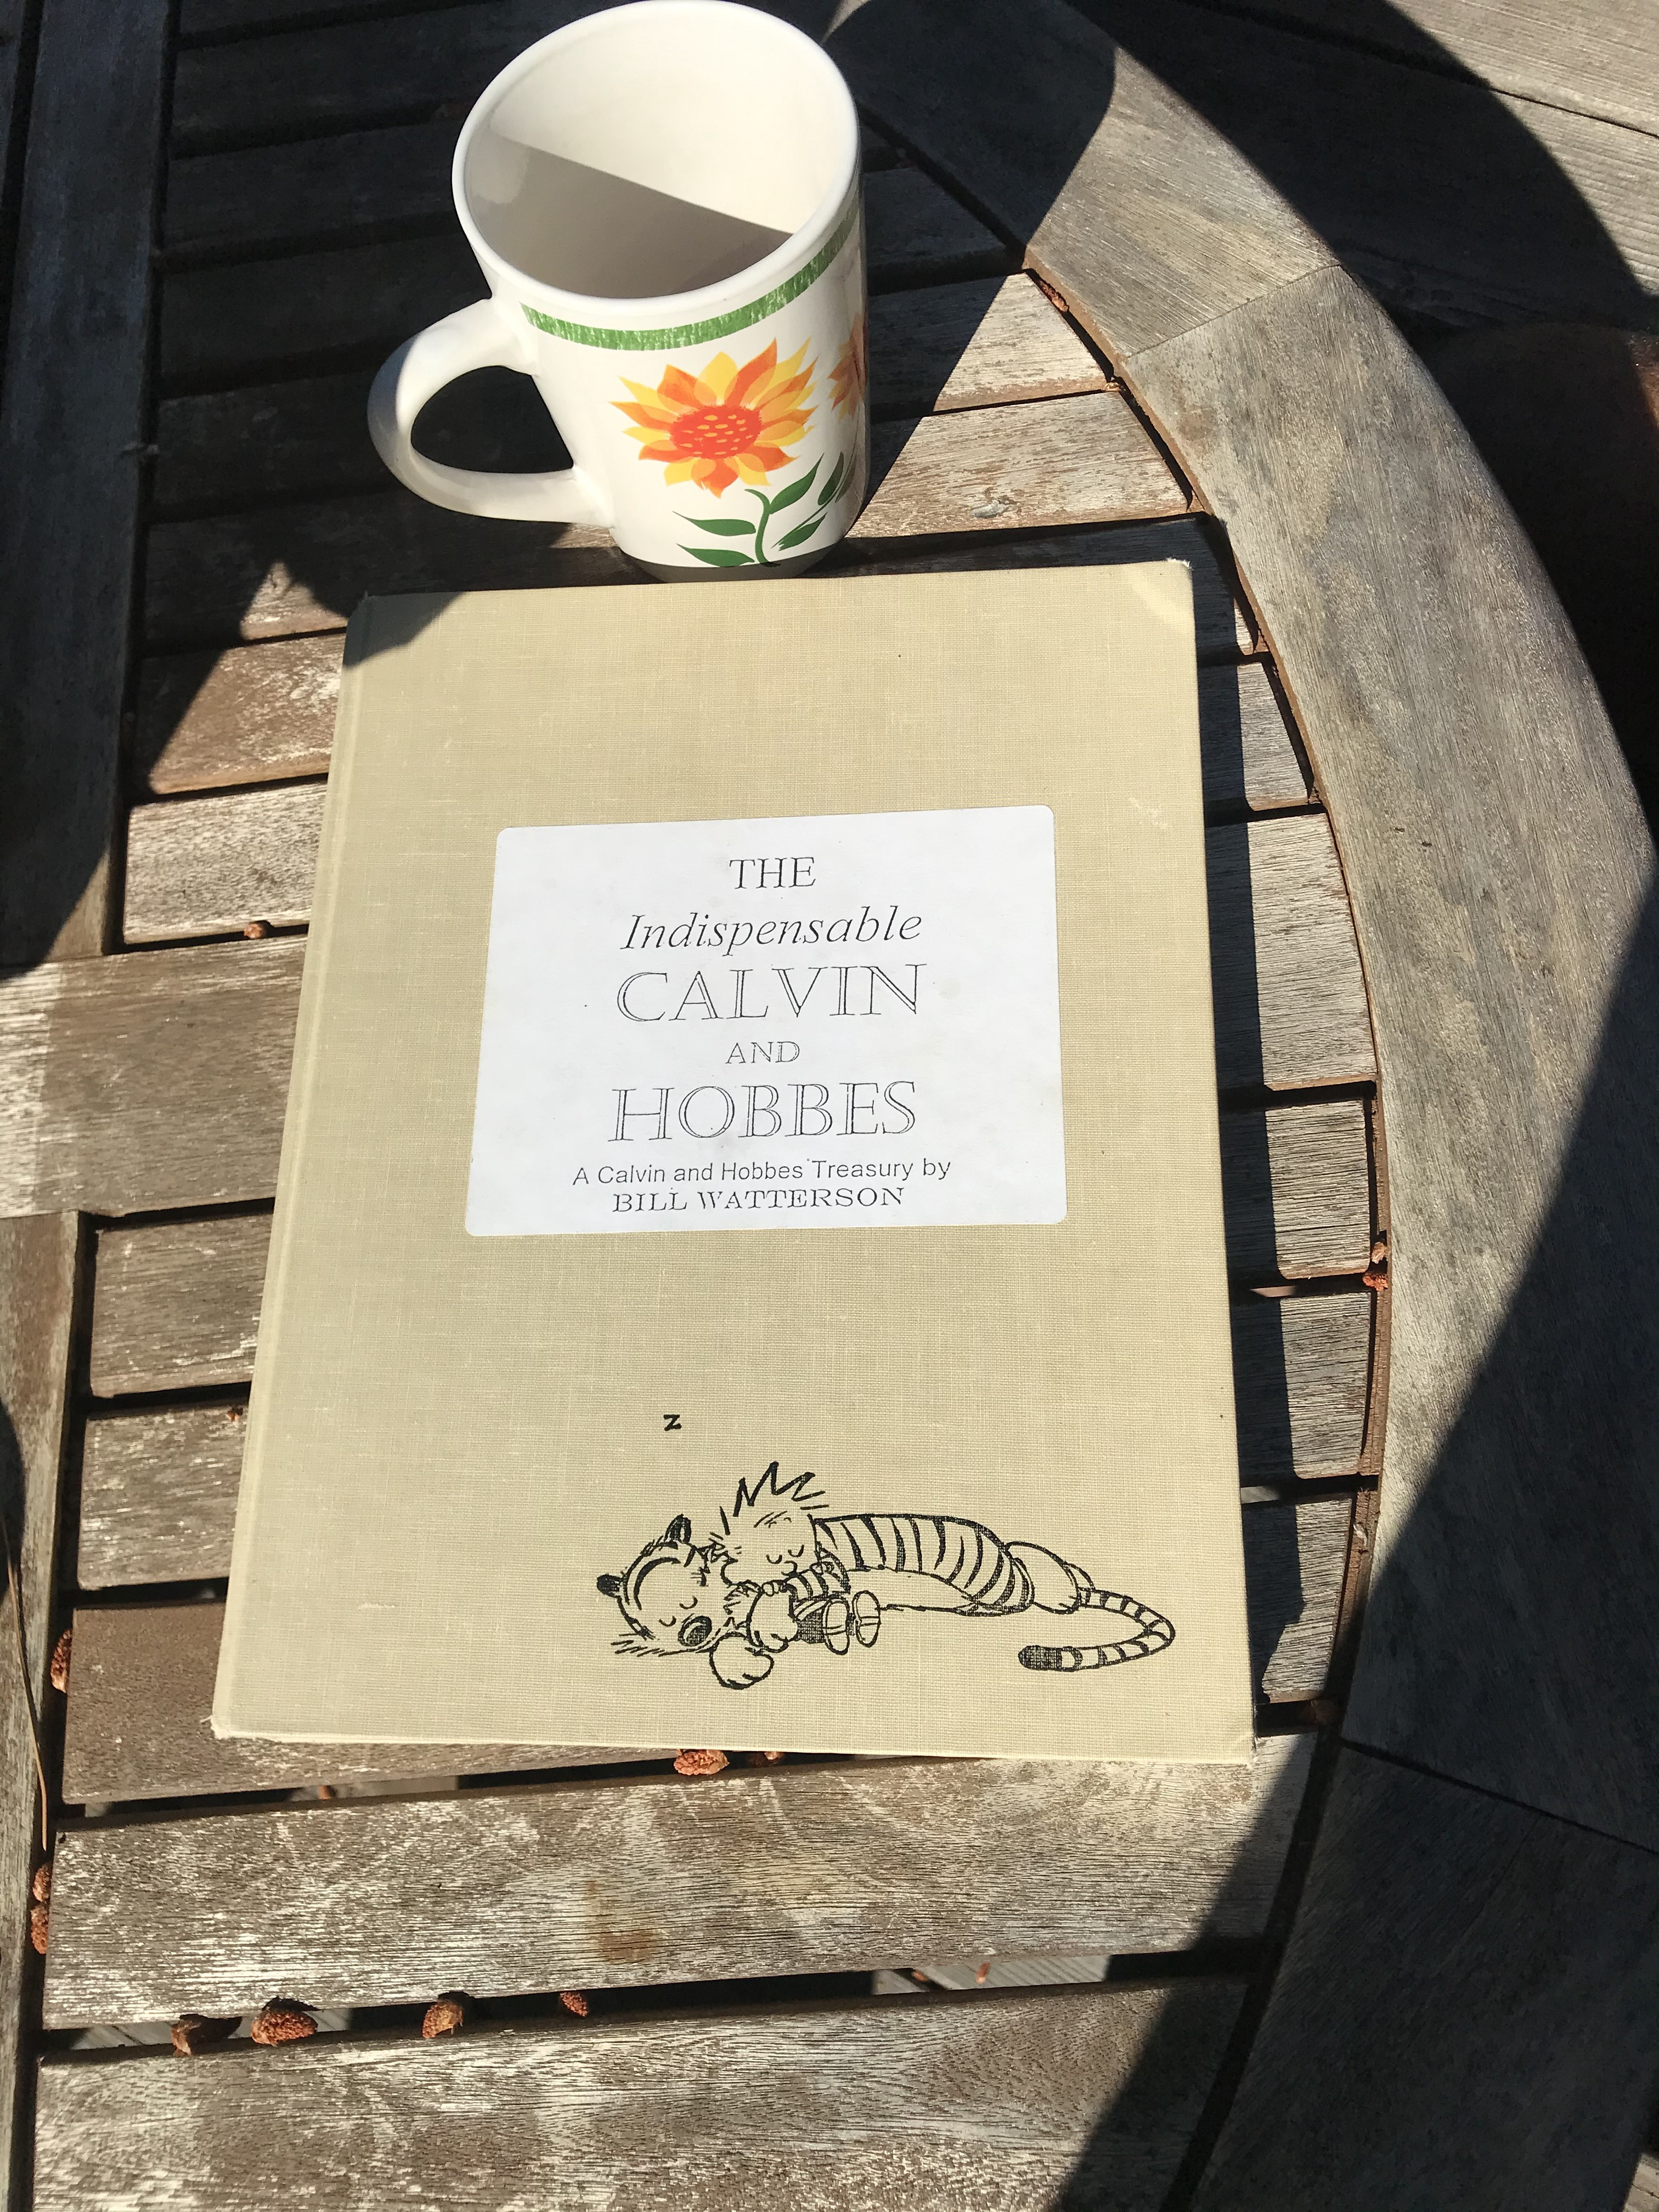 A Calvin and Hobbes book next to a coffee cup